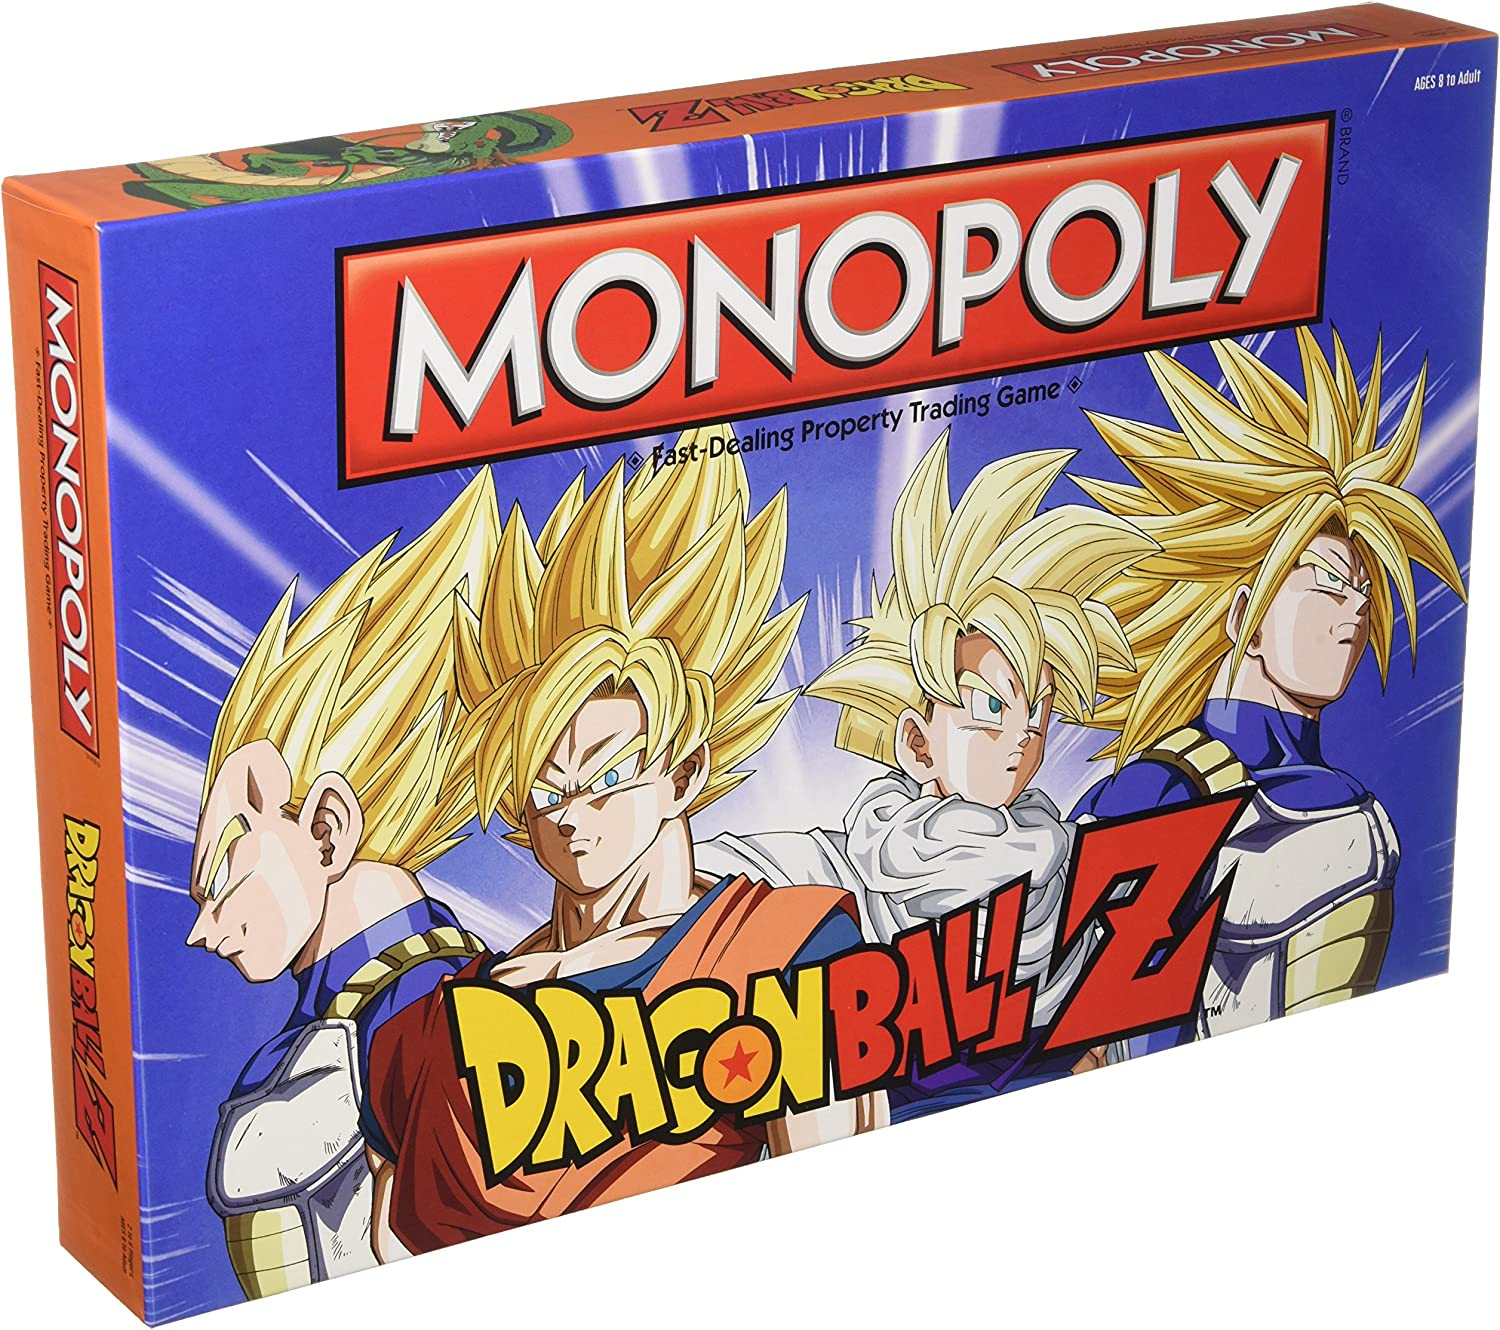 Monopoly Dragon Ball Z Board Game Recruit Legendary Warriors Goku Vegeta And Gohan Official Dragon Ball Z Anime Series Merchandise Themed Monopoly Game Toys Games